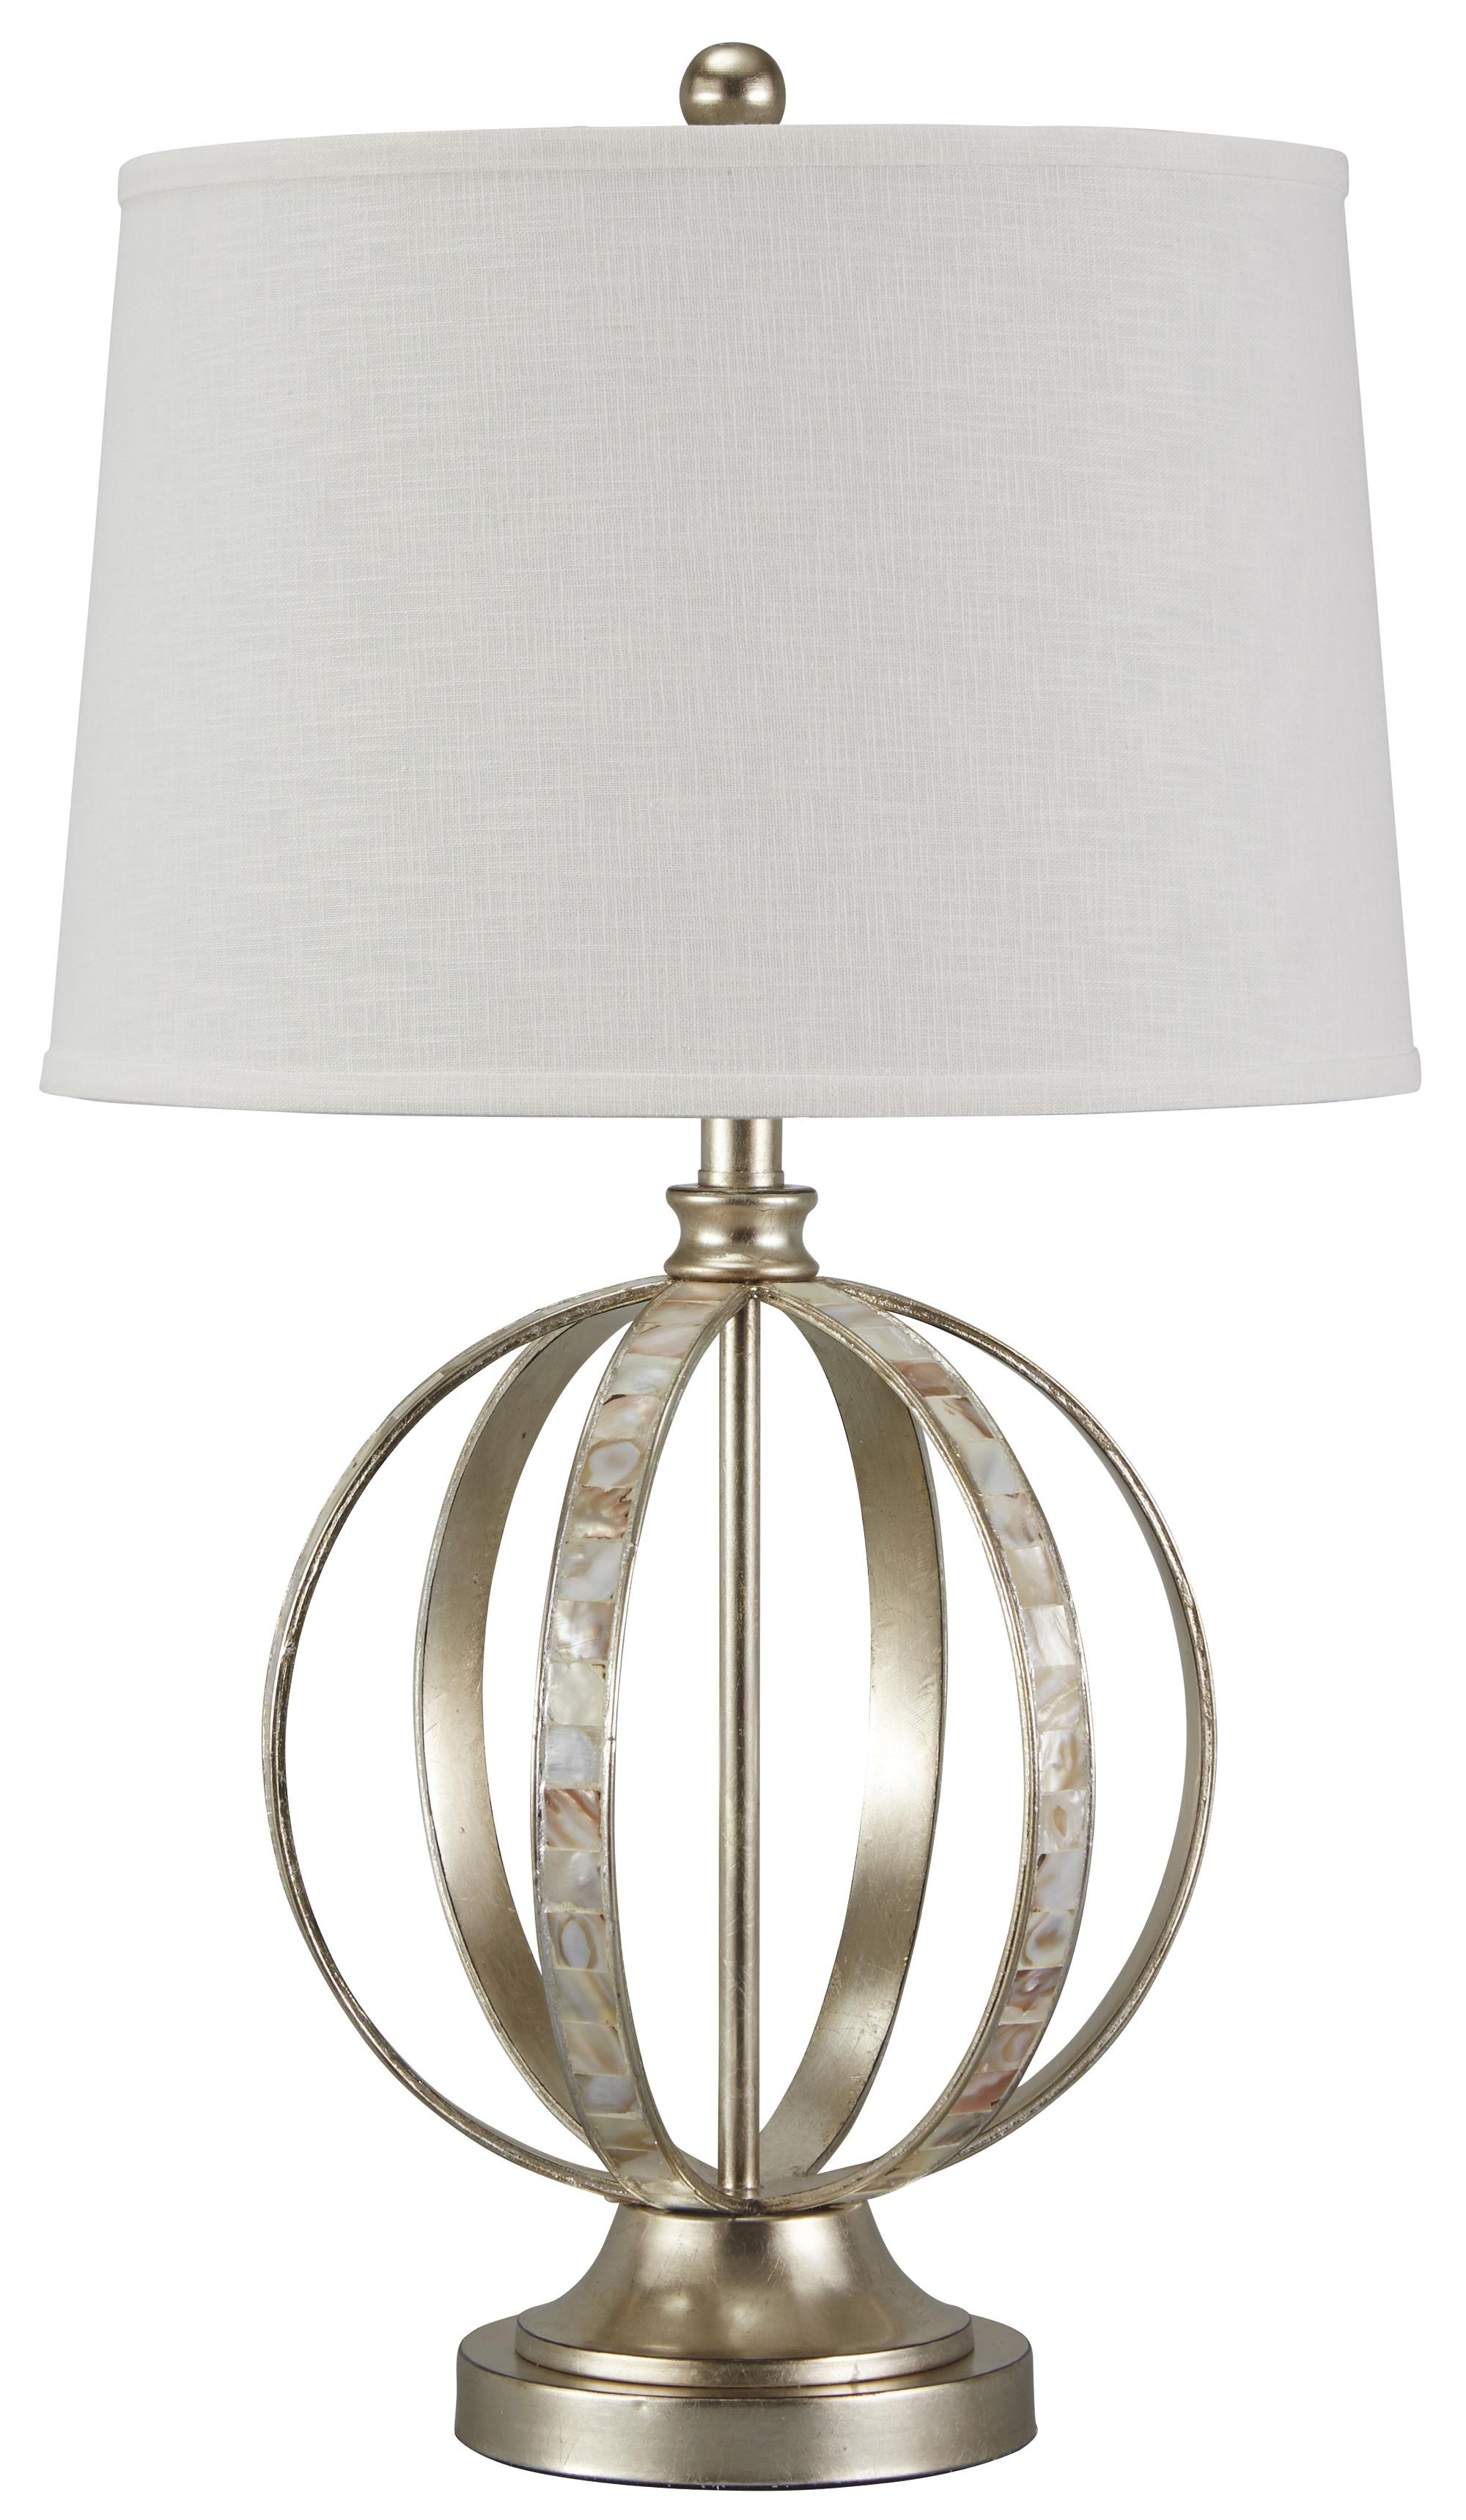 Signature Design by Ashley Lamps - Traditional Classics Shaunnea Metal Table Lamp - Item Number: L390014